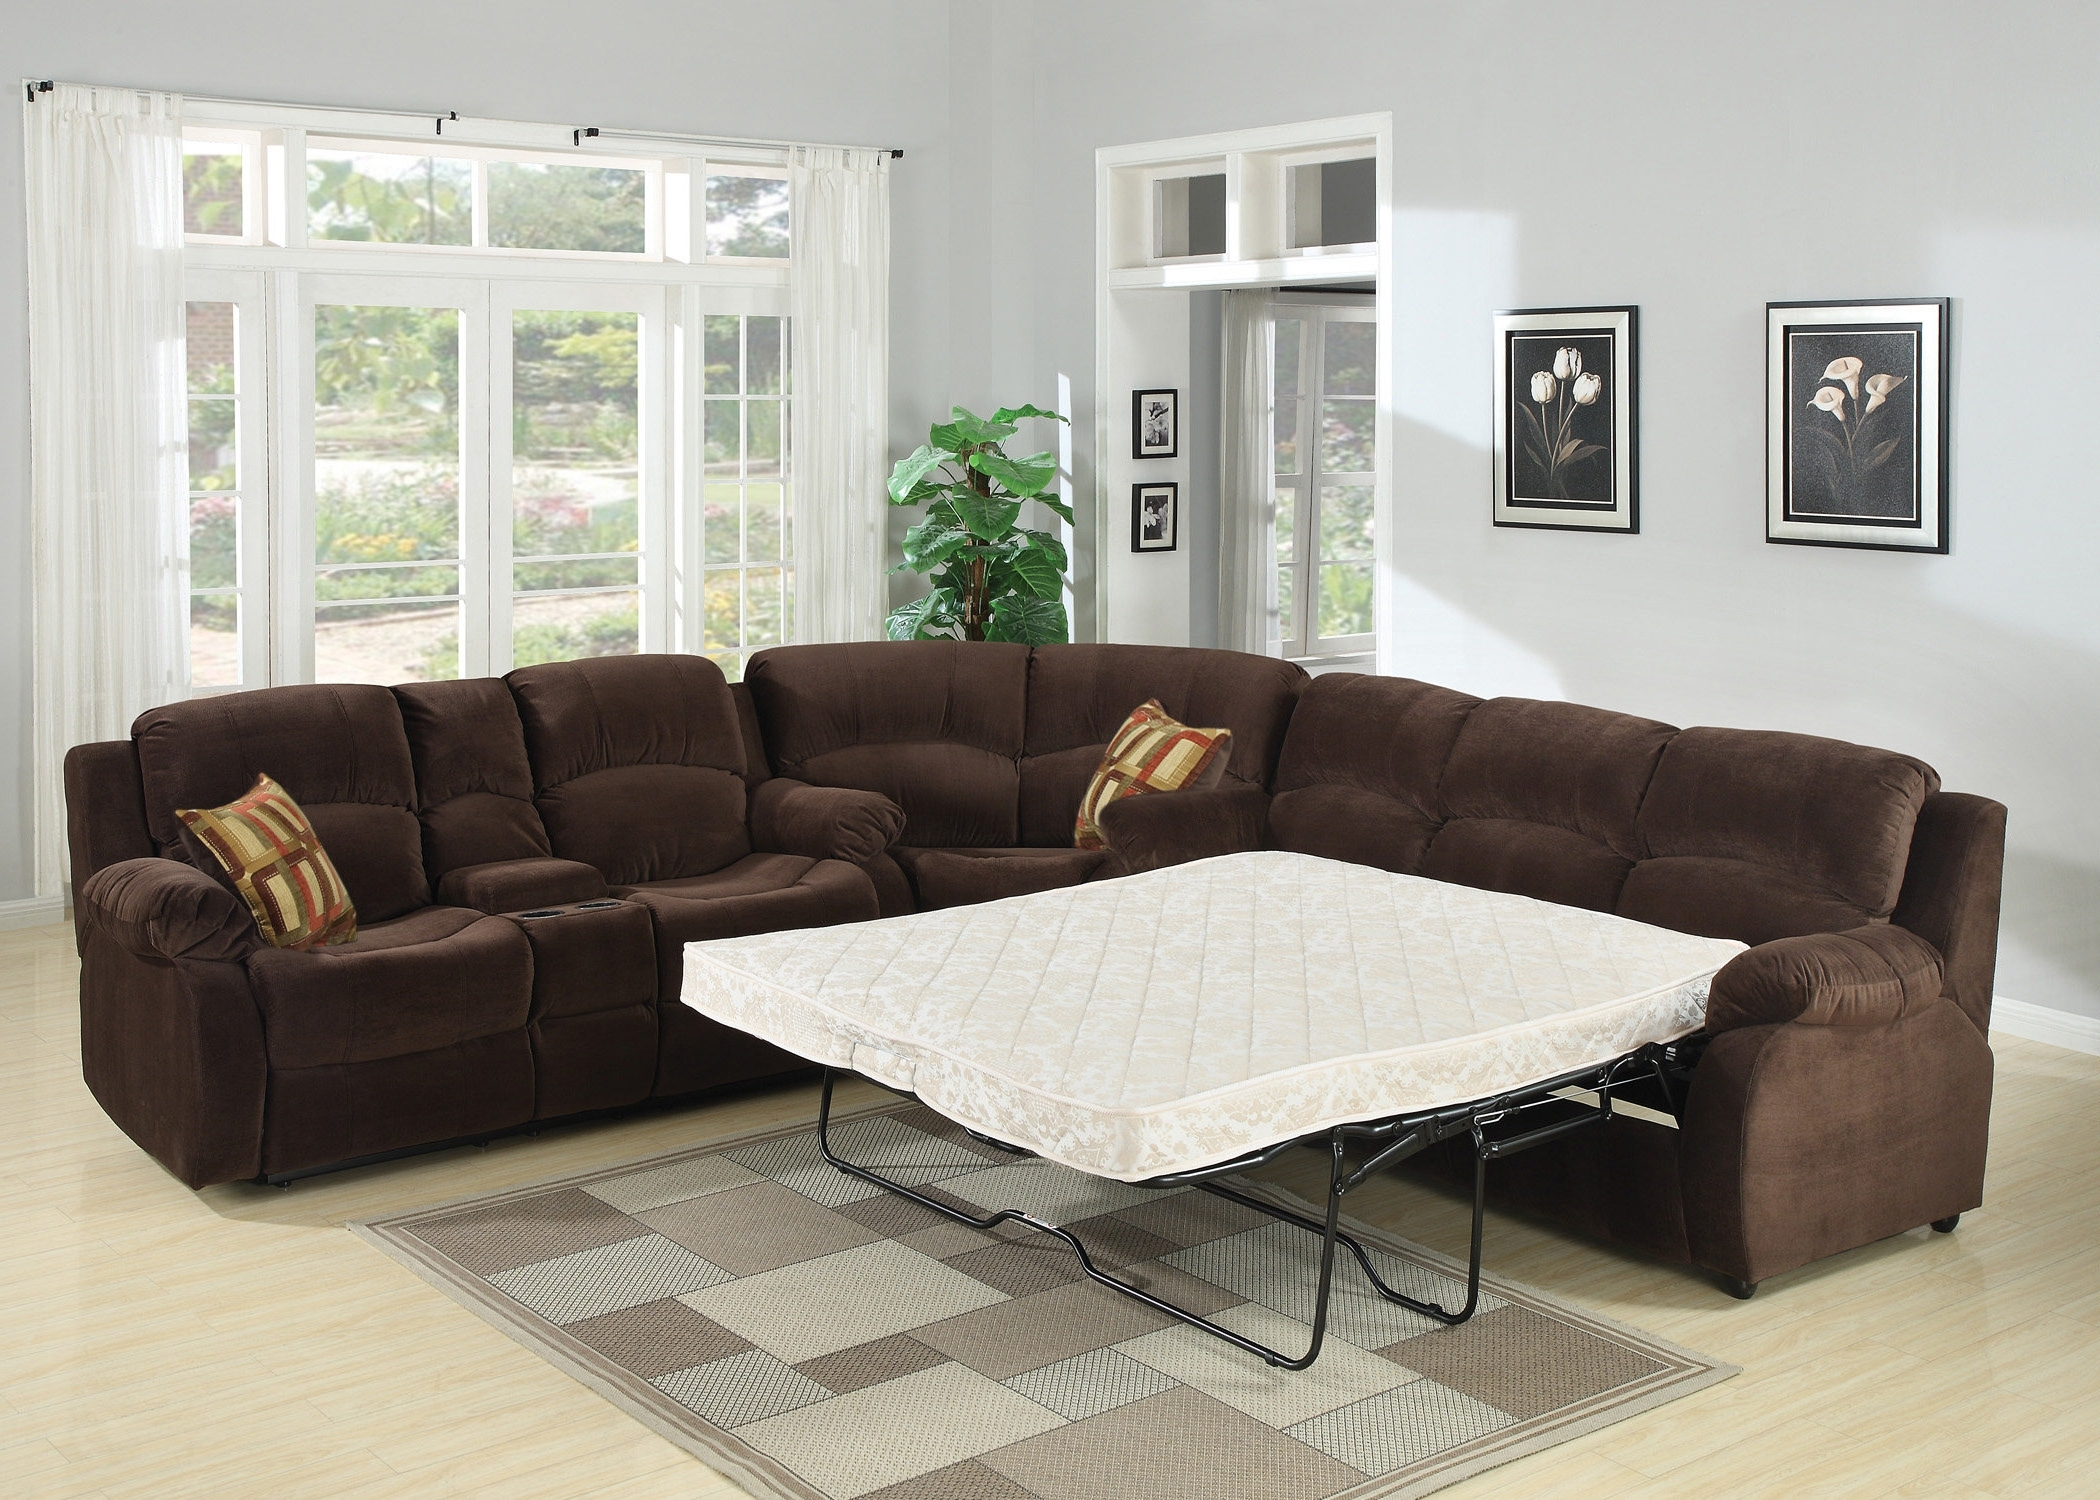 Wayfair With Regard To Most Popular Adjustable Sectional Sofas With Queen Bed (View 4 of 20)